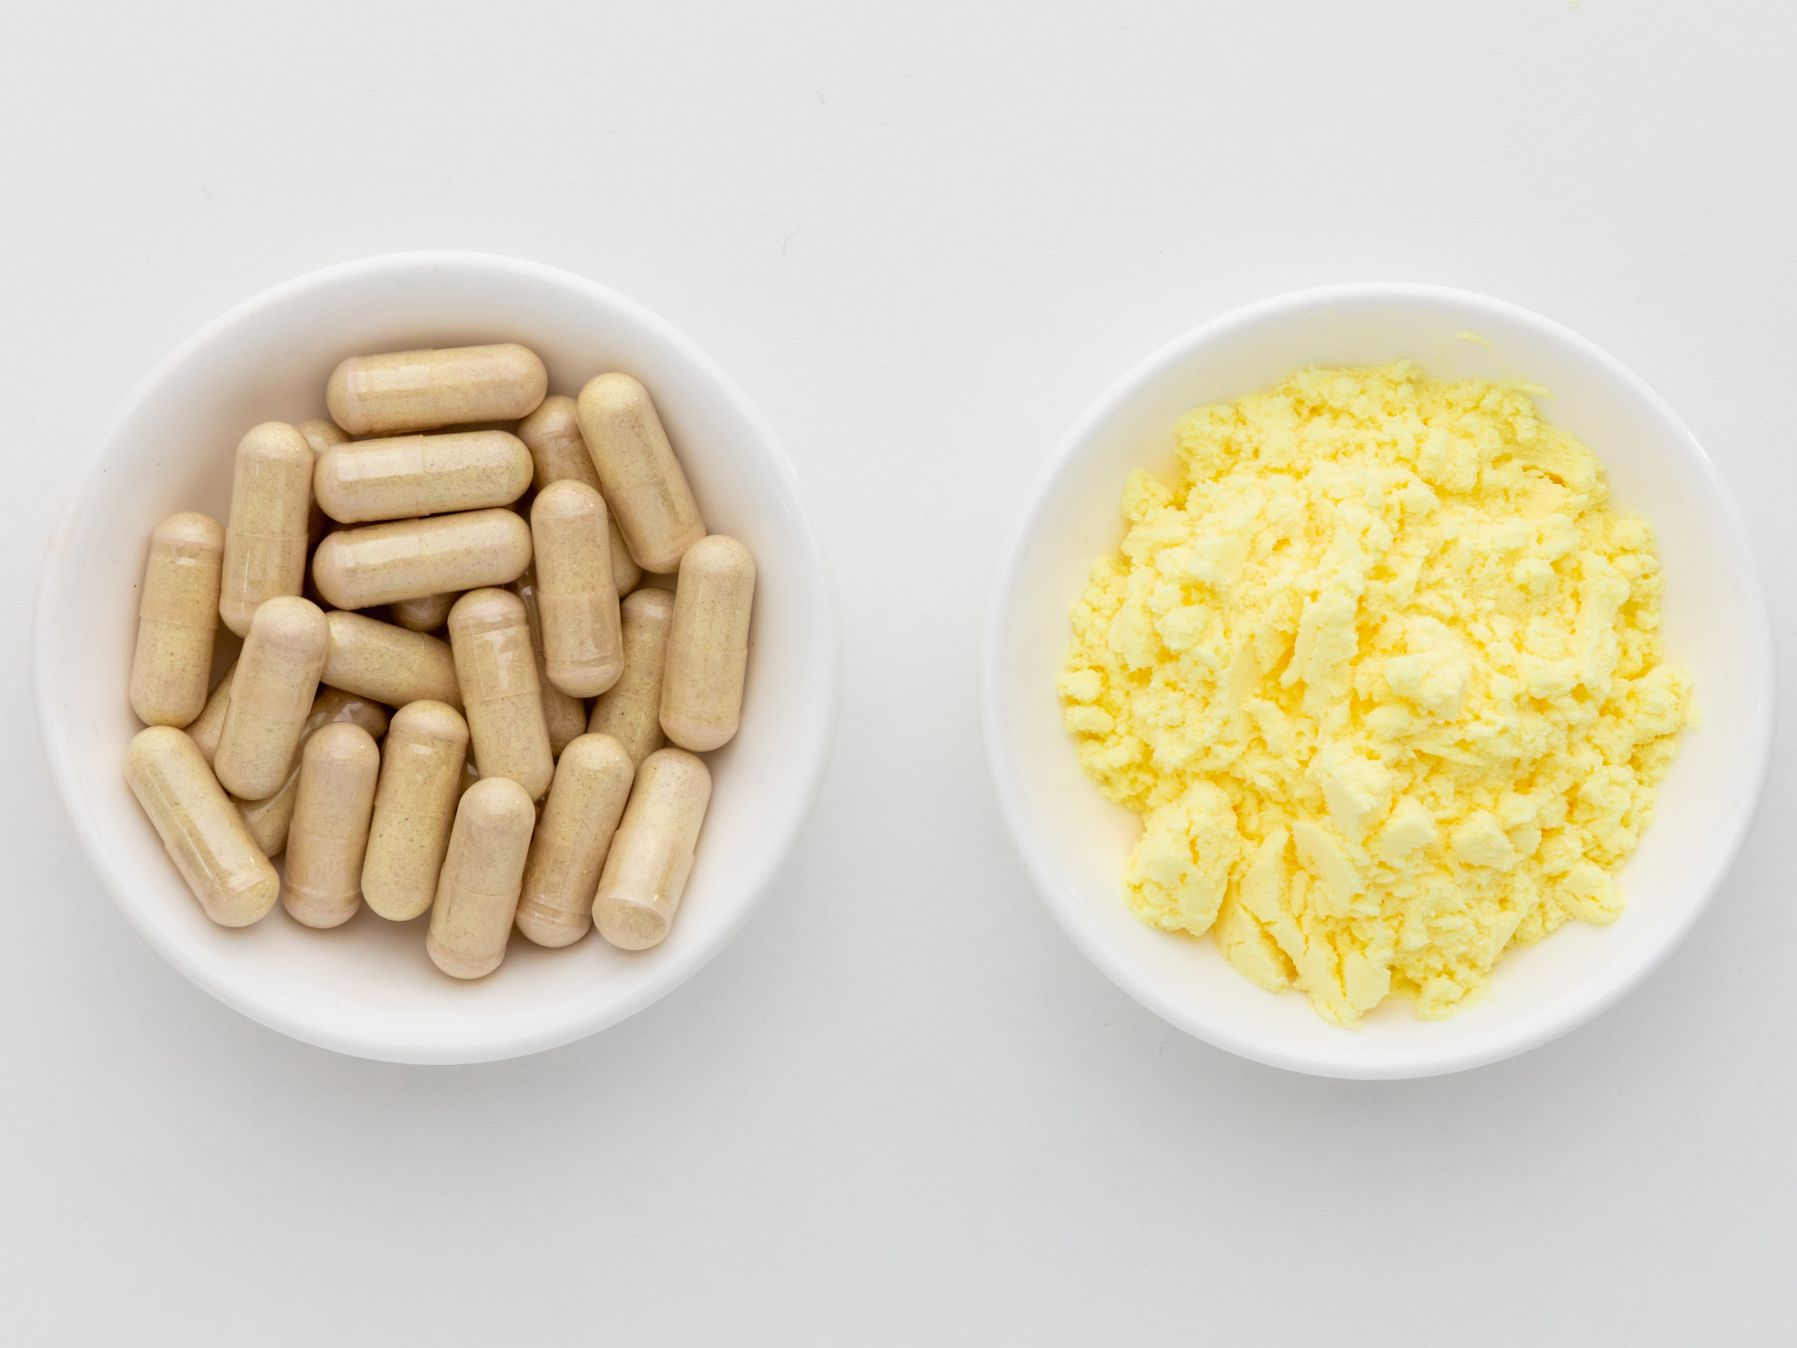 Alpha-Lipoic Acid: Benefits, Side Effects, Dosage, Interactions